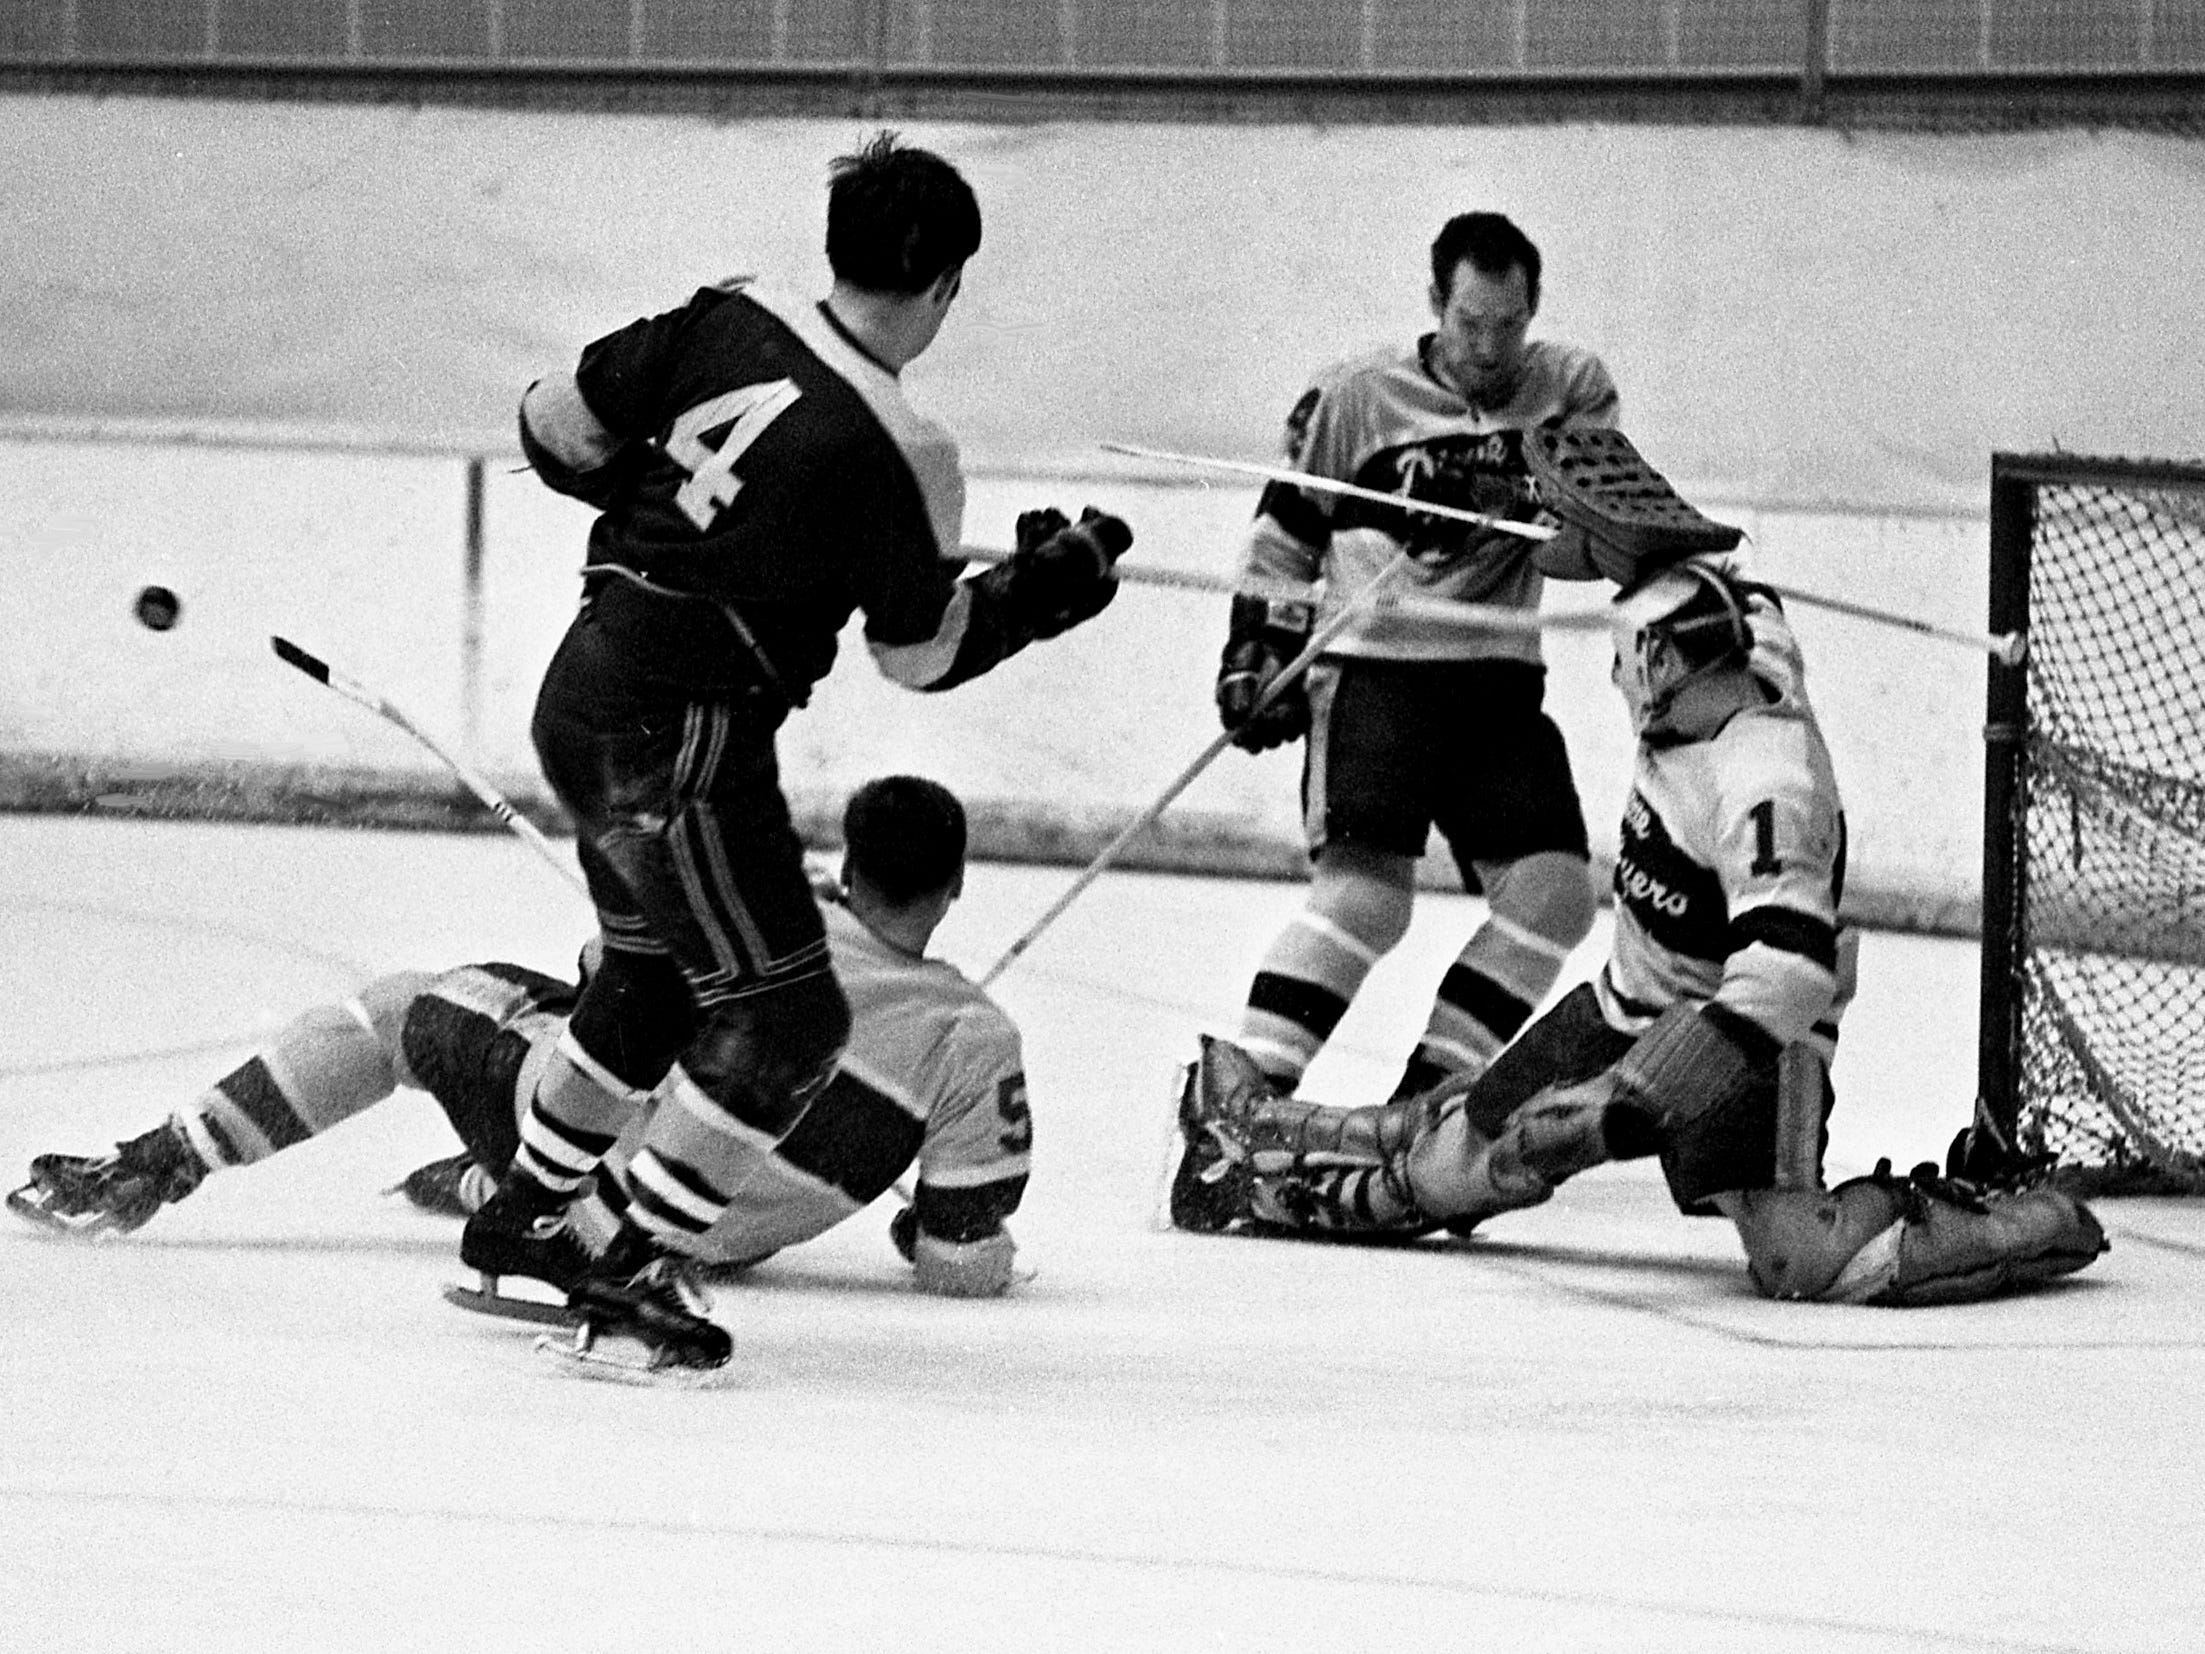 With teammates Leo Olivier (5) and Flo Pilote, second from right, aiding, Nashville Dixie Flyers goalie Duffy Lewis (1) slaps away the puck from a New Haven Blades shooter as Bill Orr (4) of the Blades moved in for a chance at a rebound. The Flyers rolled to a 7-3 victory before a crowd of 1,873 at Municipal Auditorium on Dec. 12, 1968.